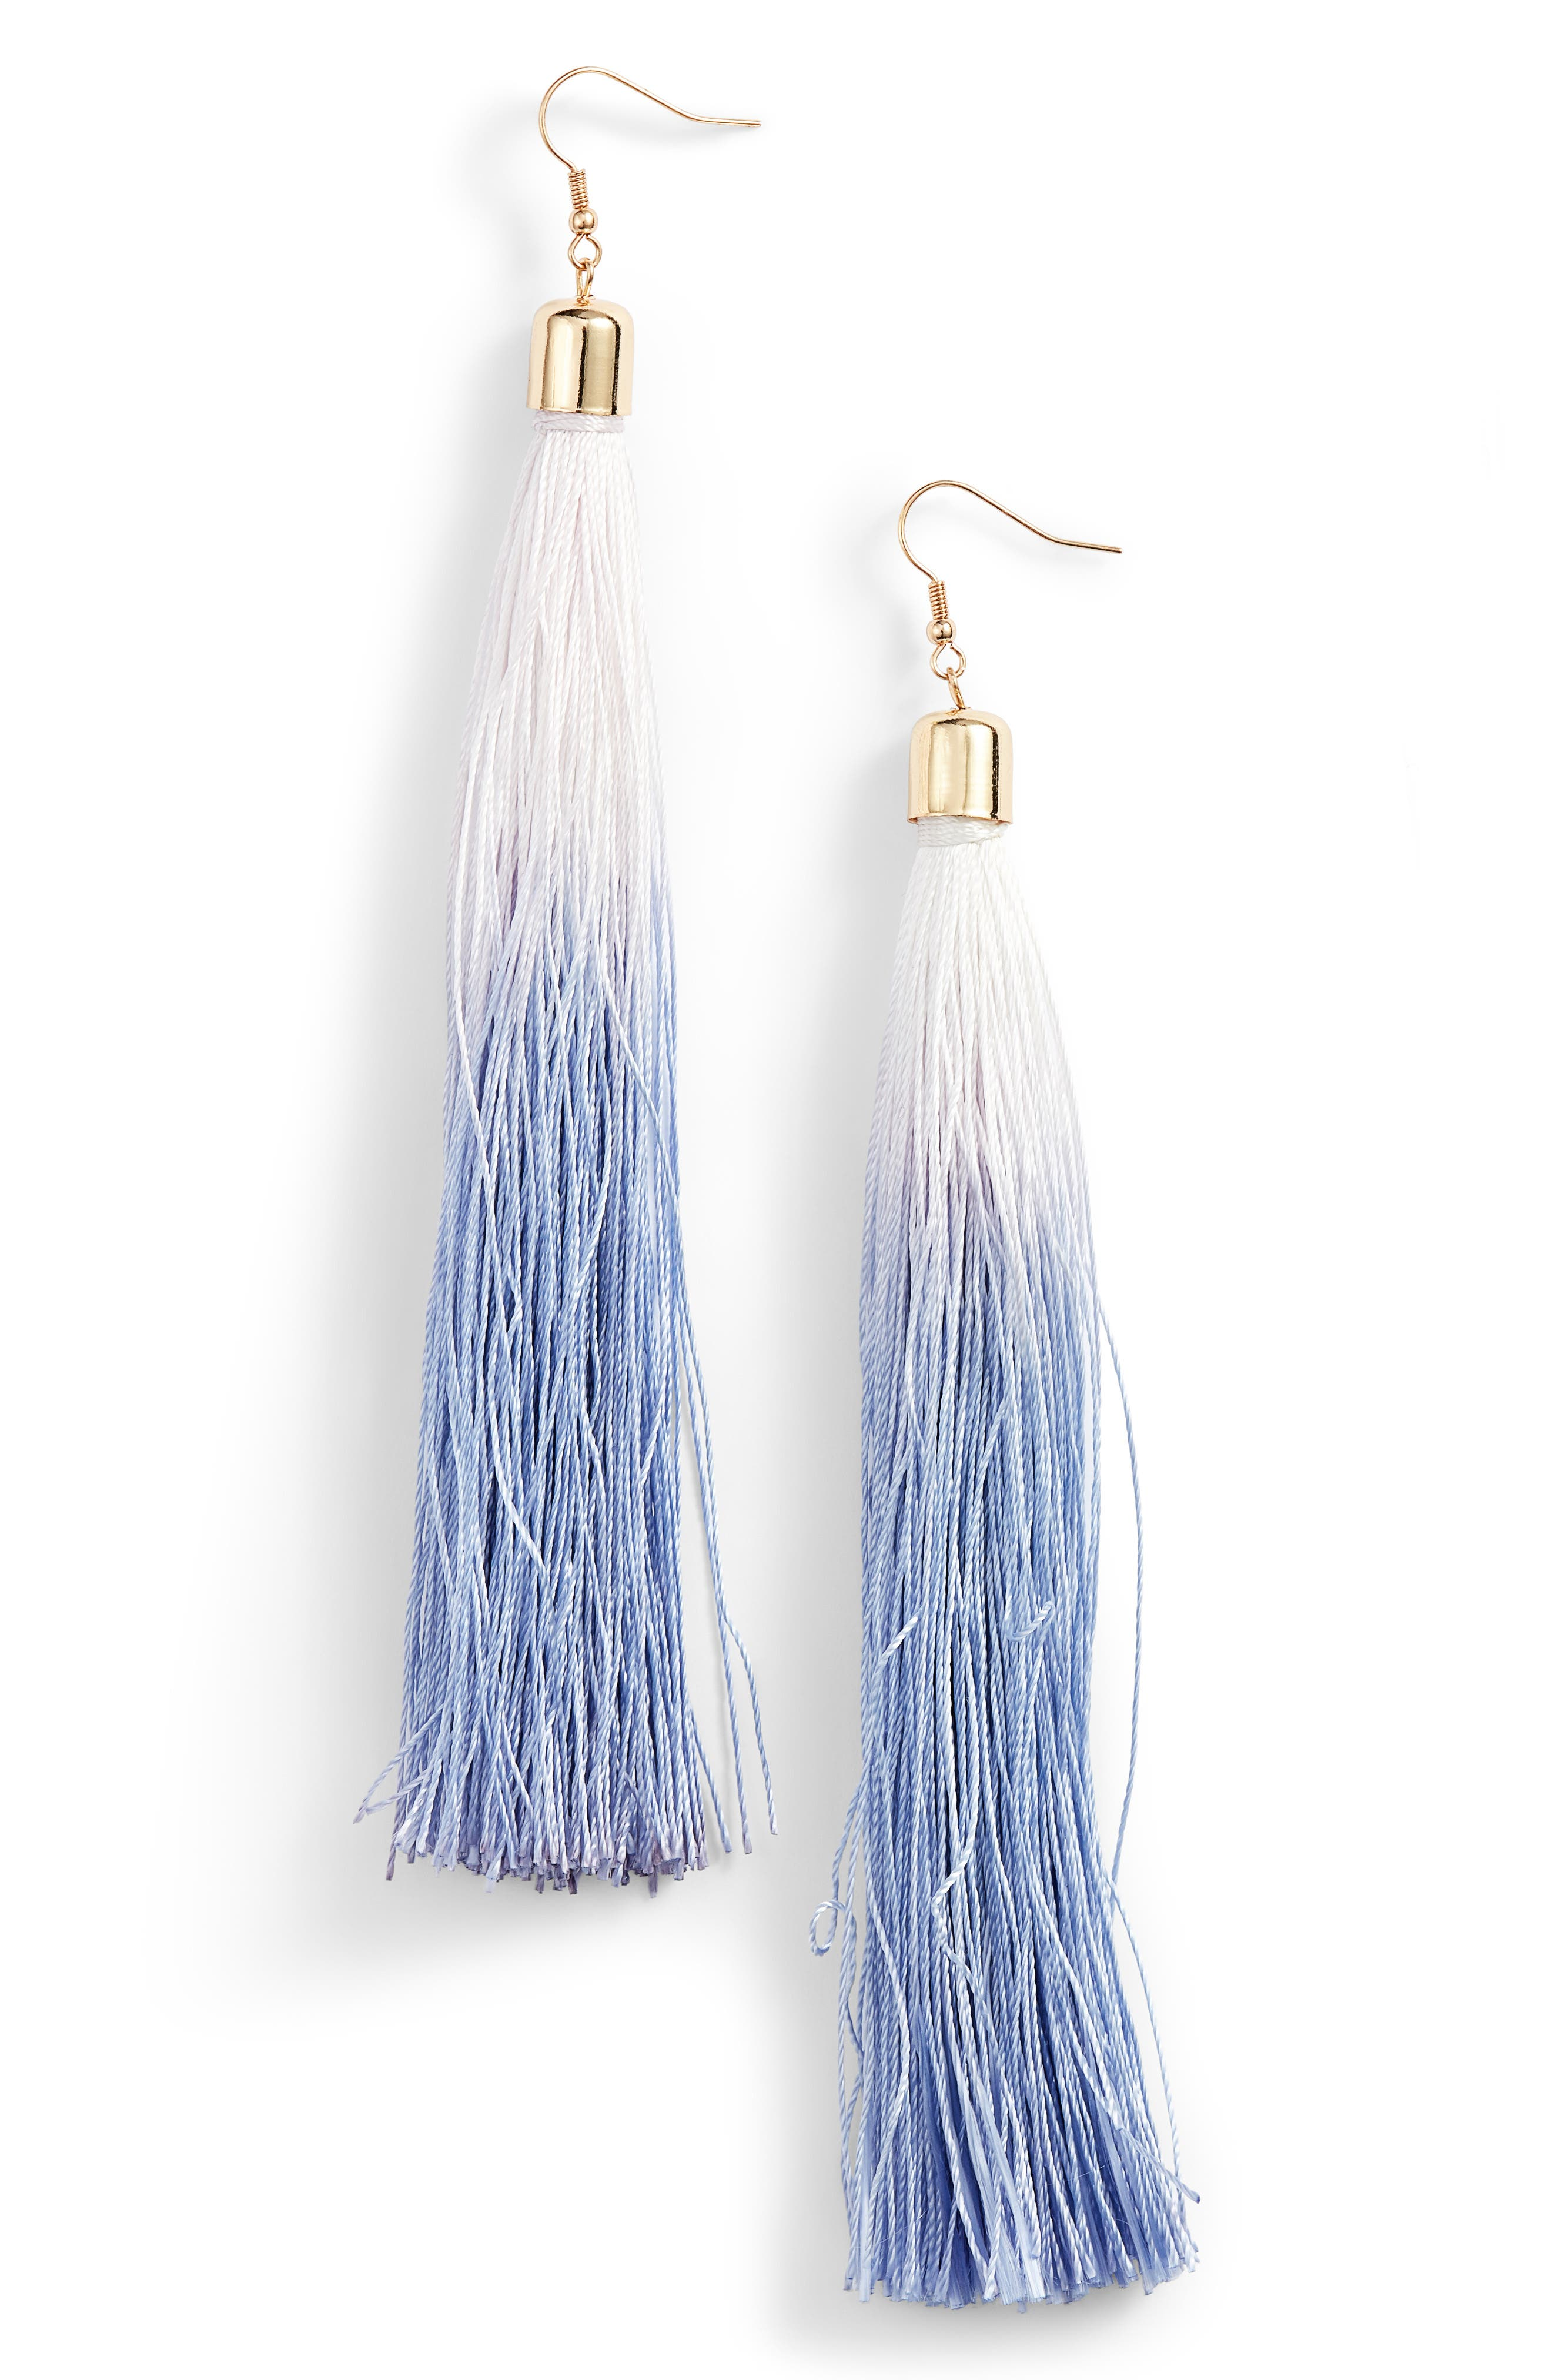 Ombré Tassel Earrings,                         Main,                         color, Blue Ombre